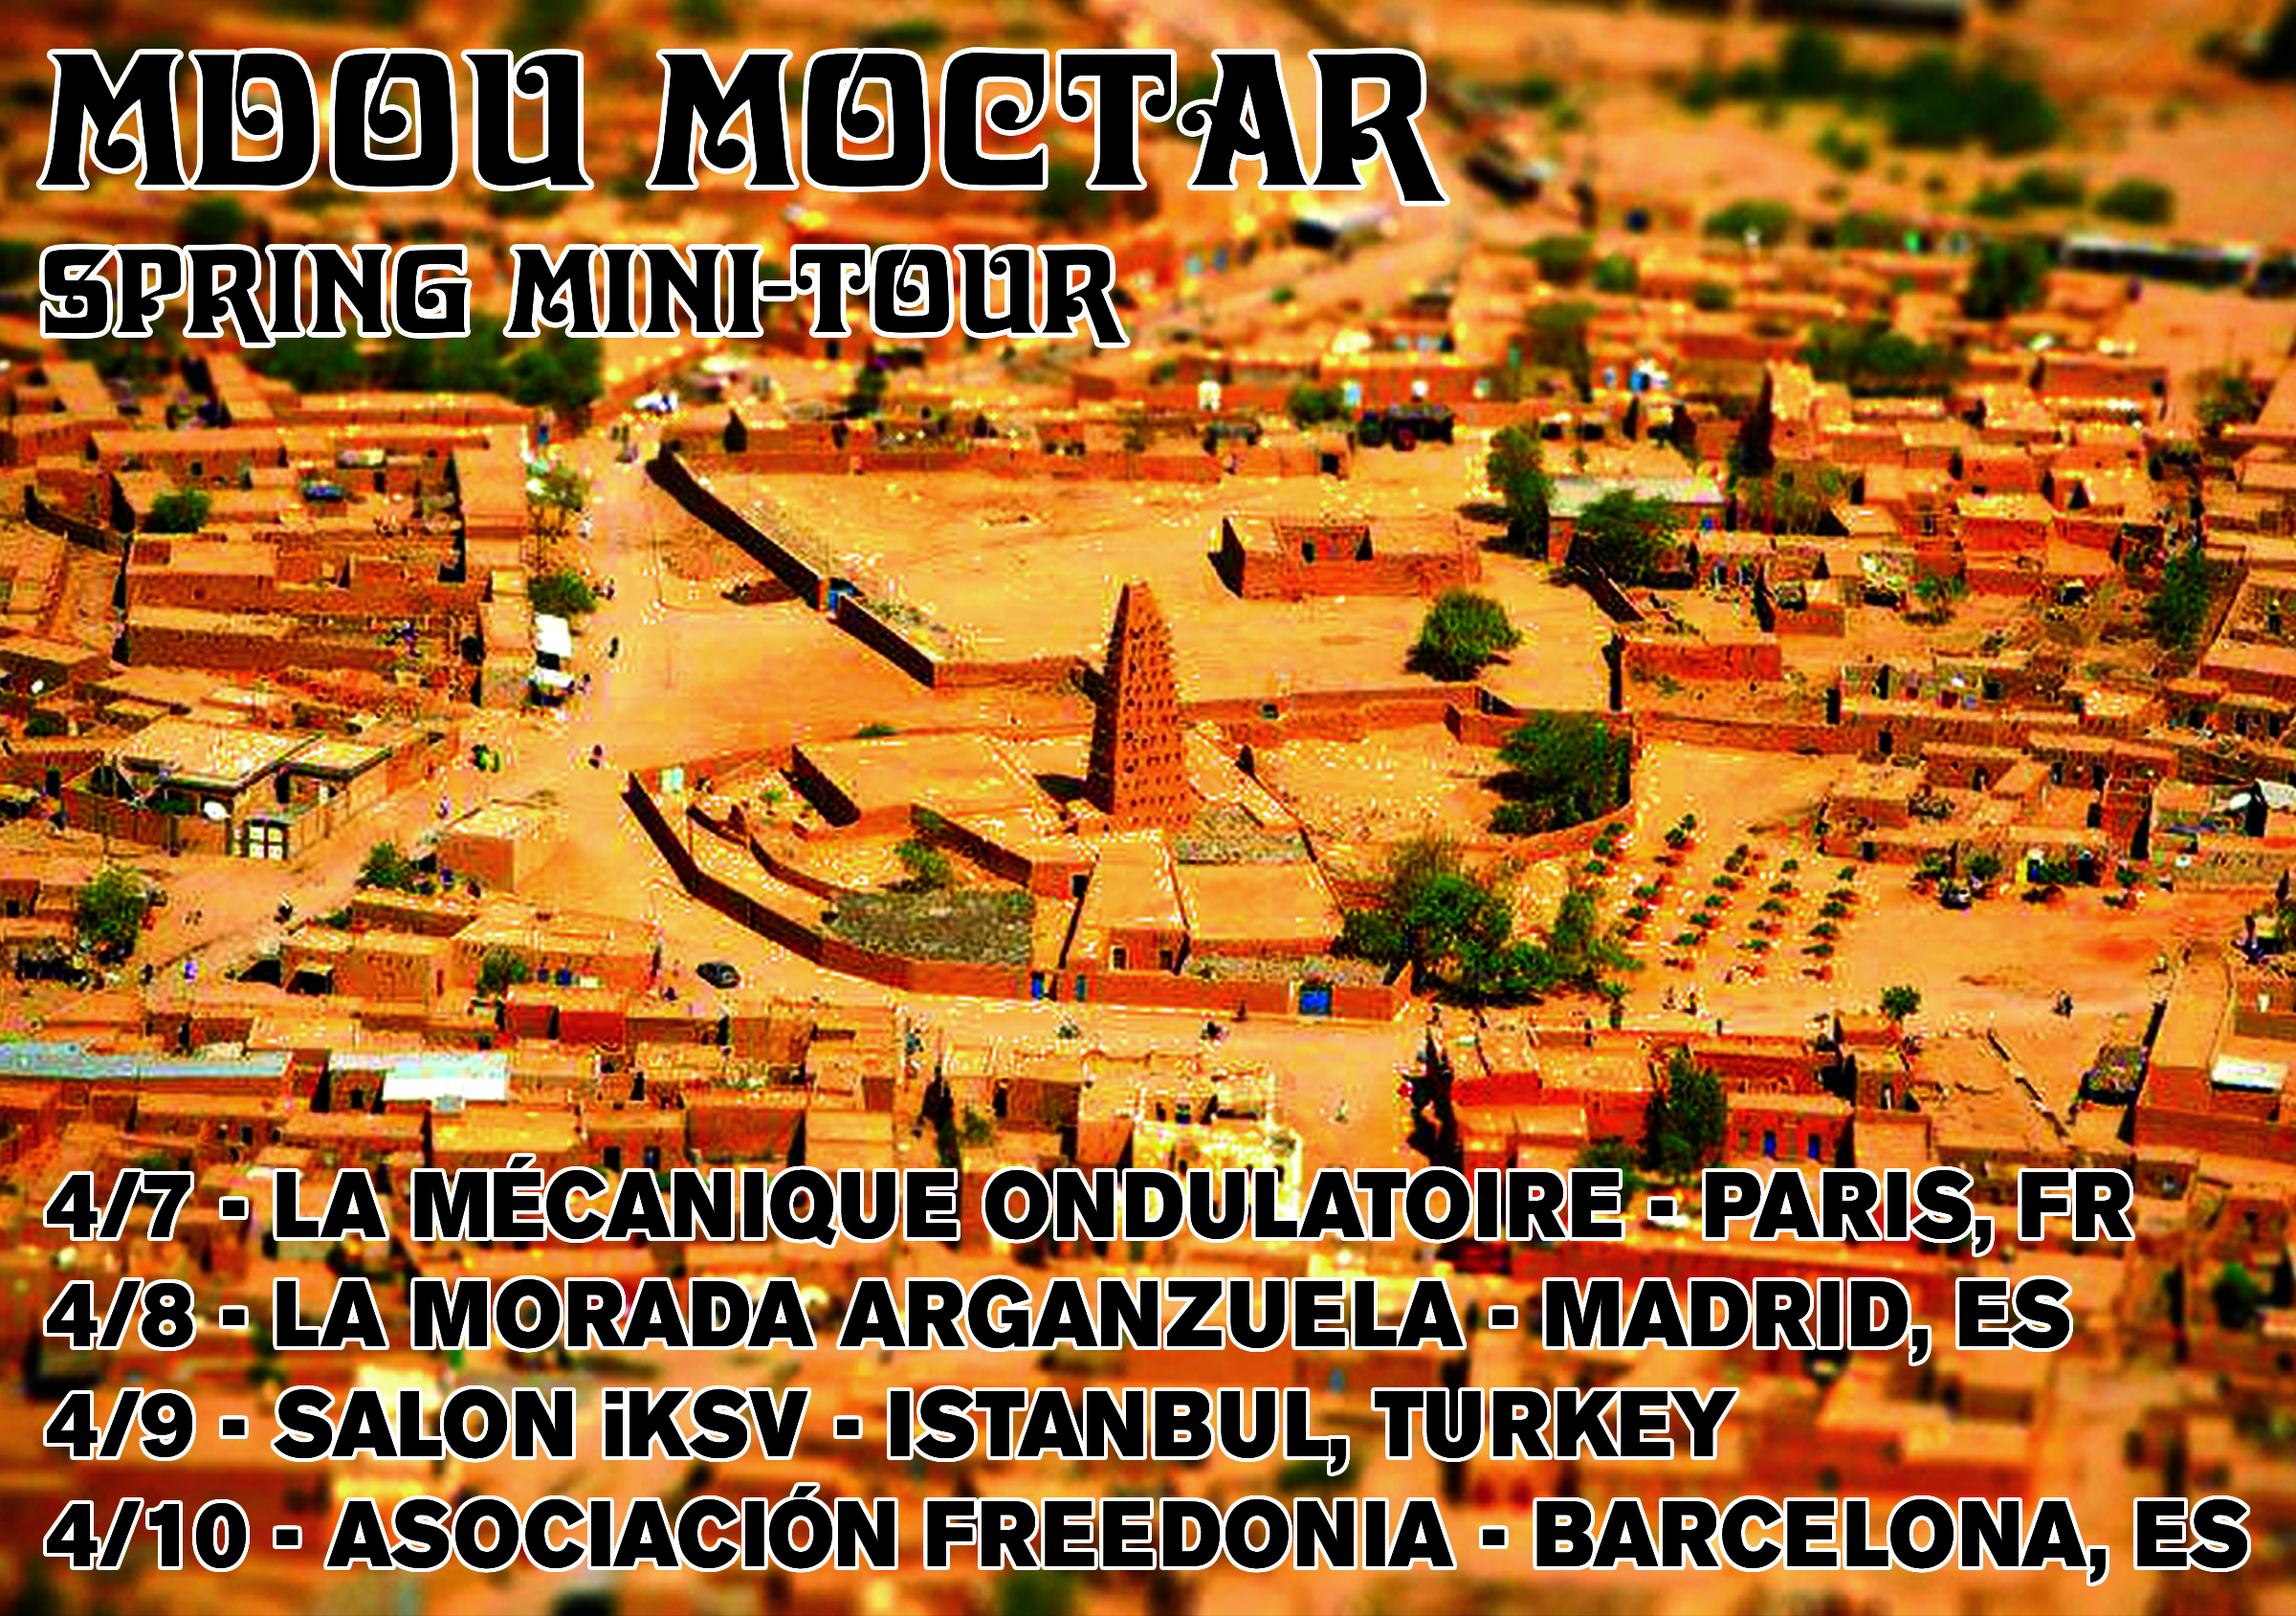 mdou_poster